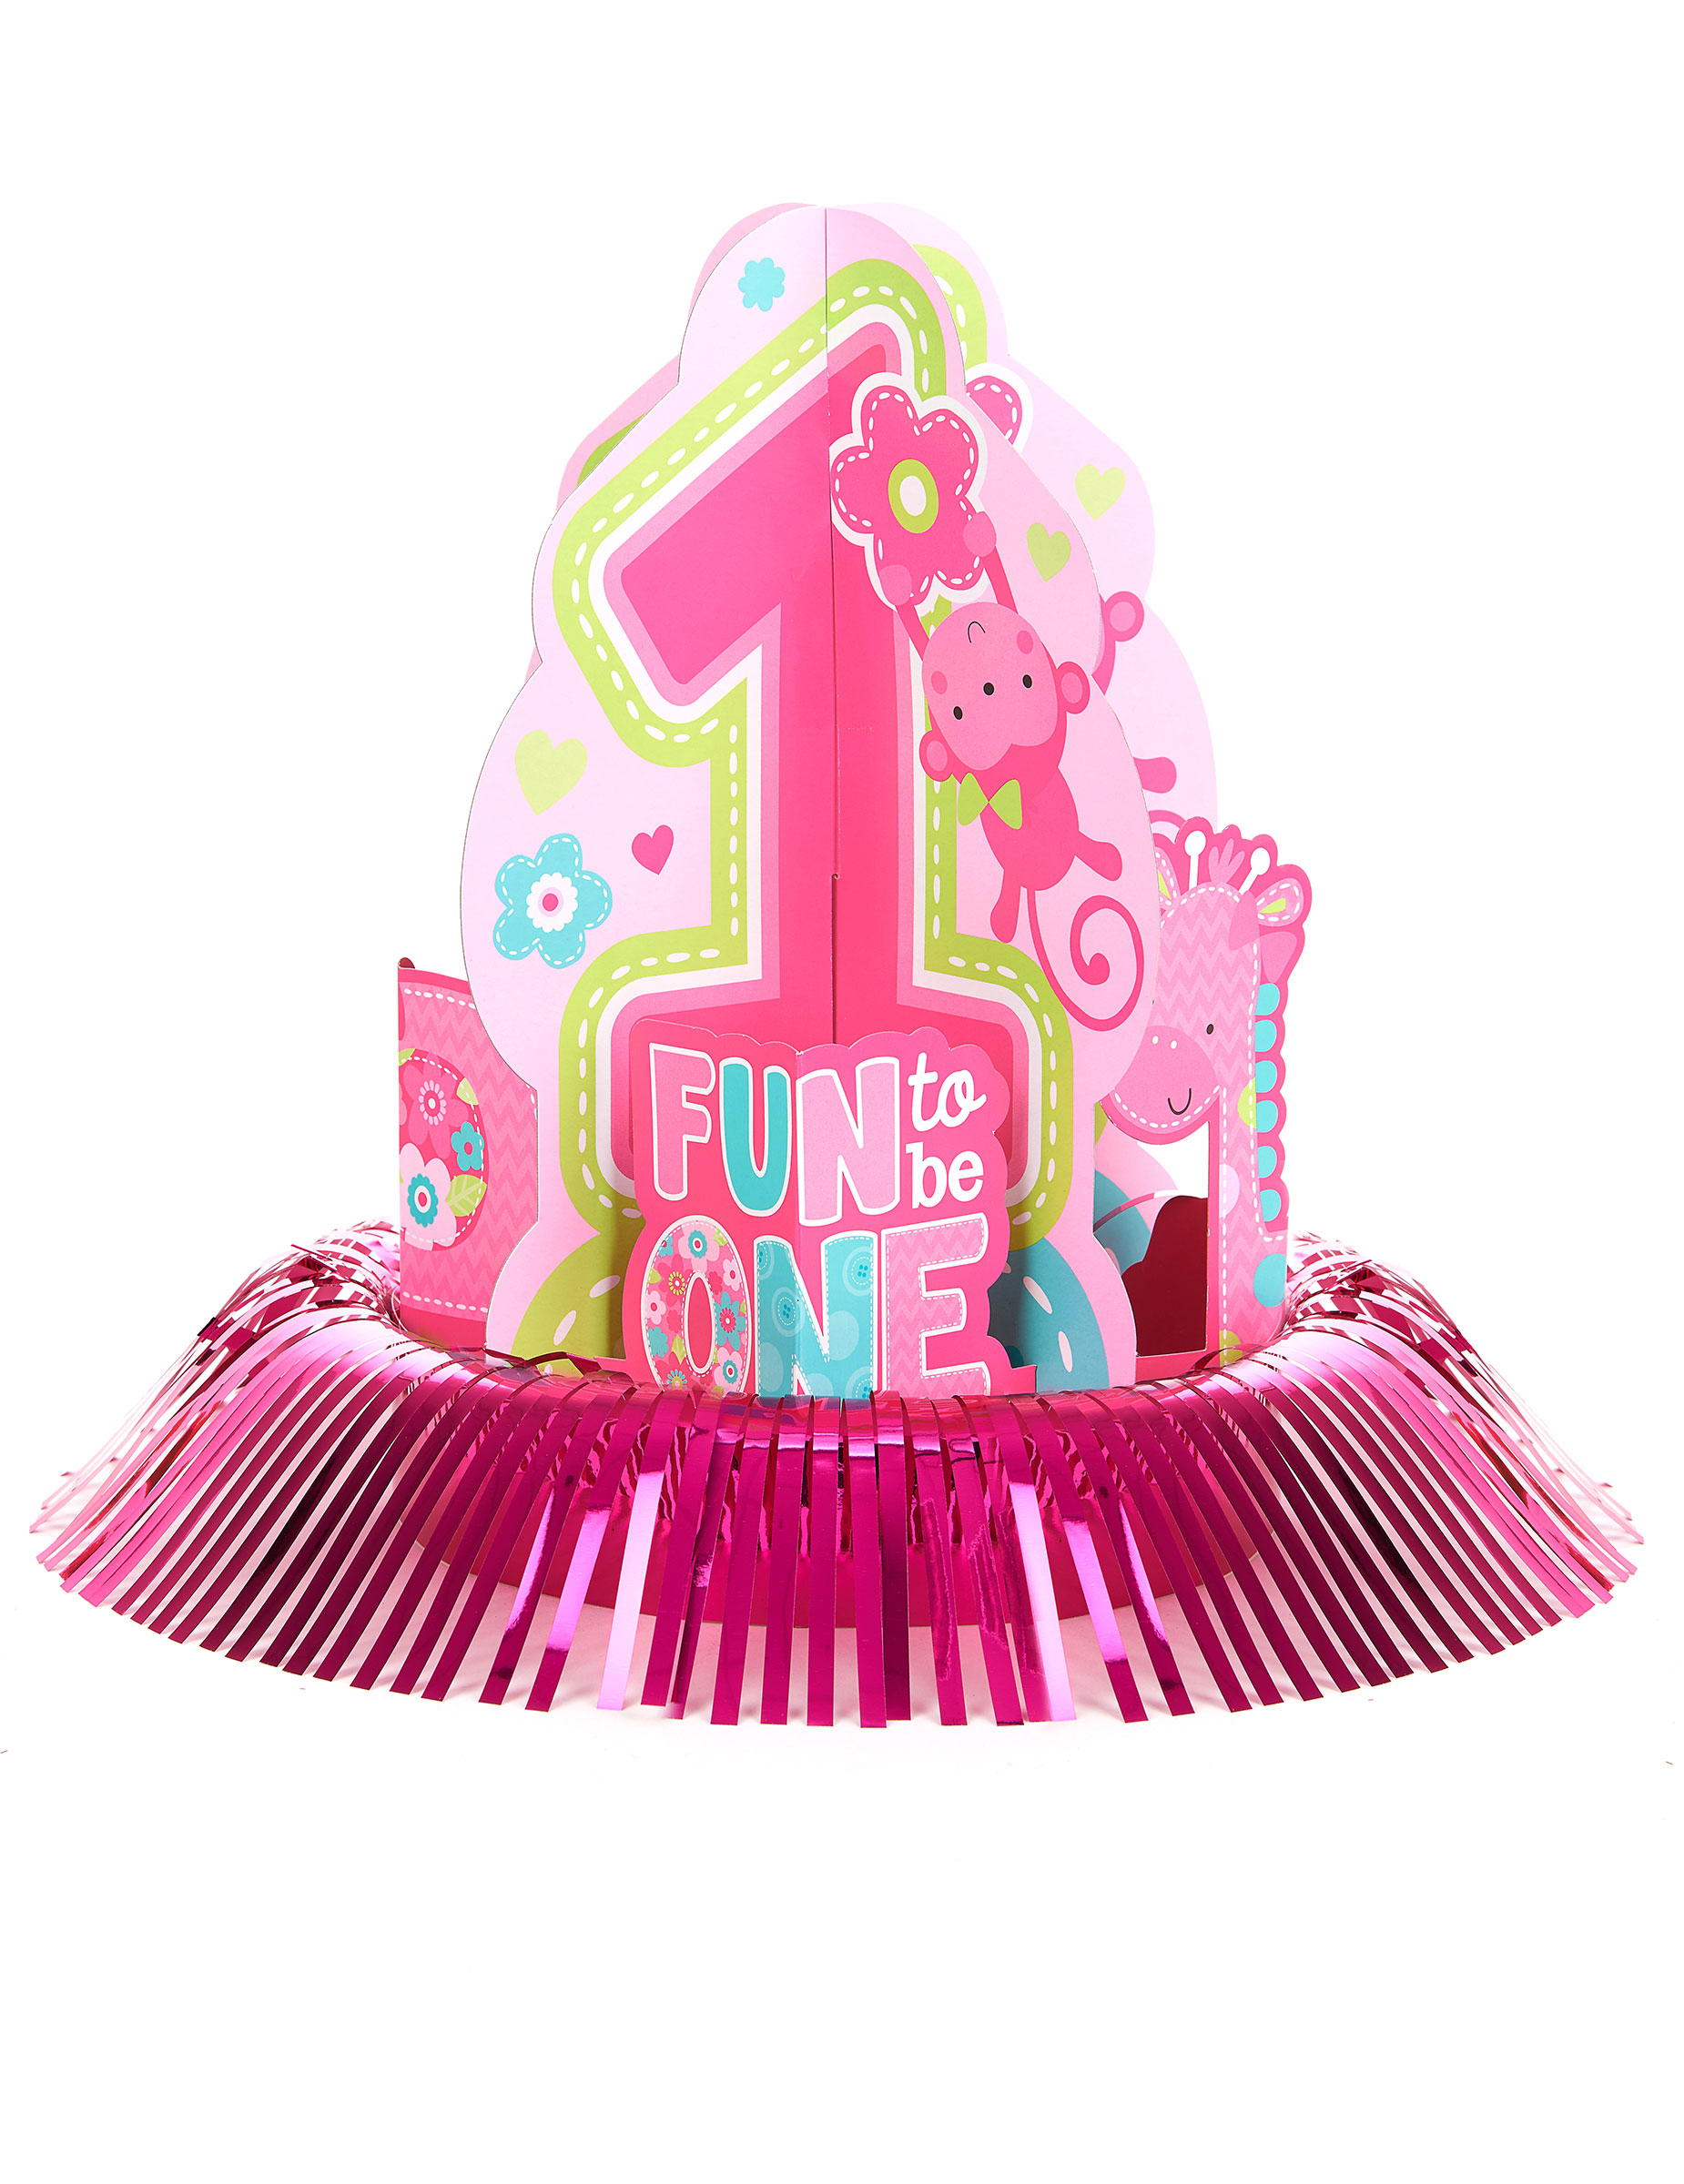 Kit de d coration centre de table 1 an fille d coration anniversaire et f tes th me sur - Decoration anniversaire 1 an ...